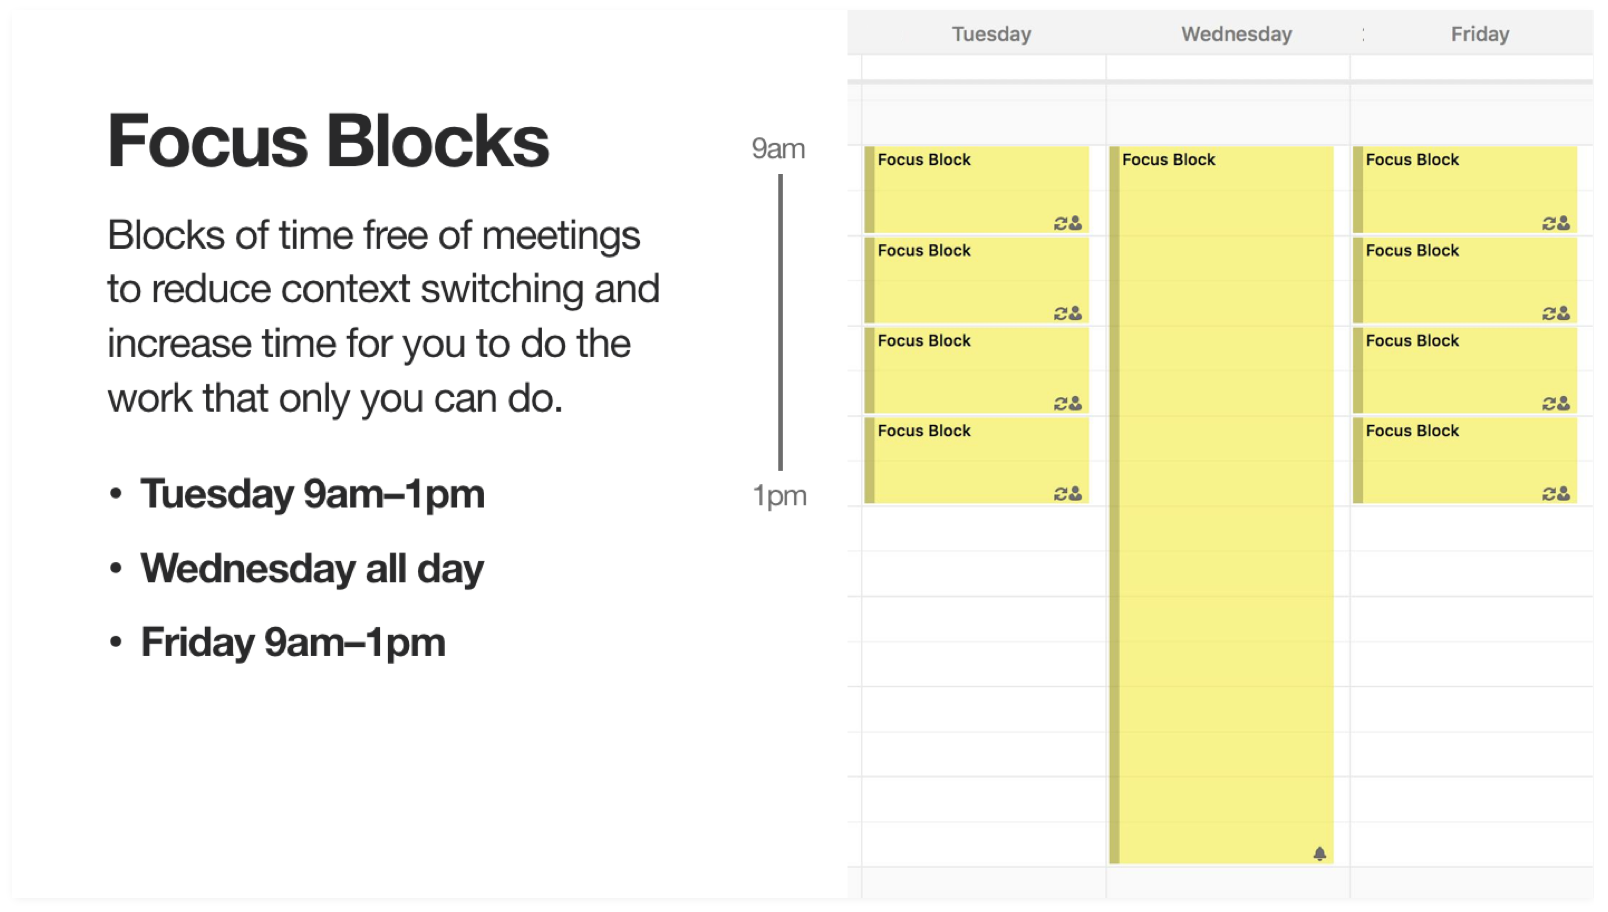 Screenshot showing focus block times 9am to 1pm on Tuesdays and Fridays, all day Wednesdays